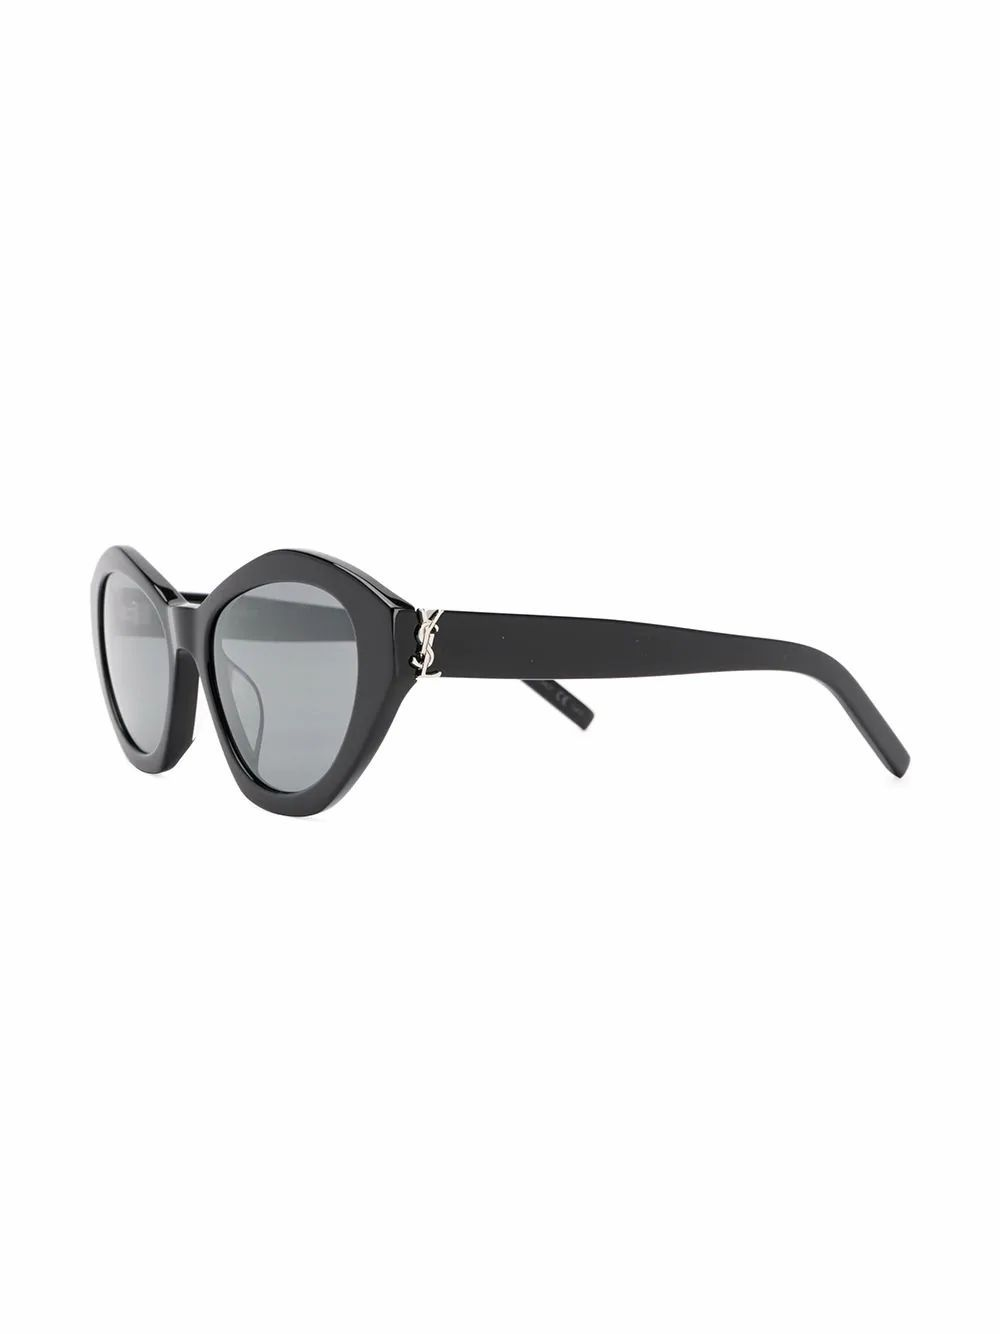 SAINT LAURENT WOMEN'S 610925Y99011002 BLACK ACETATE SUNGLASSES